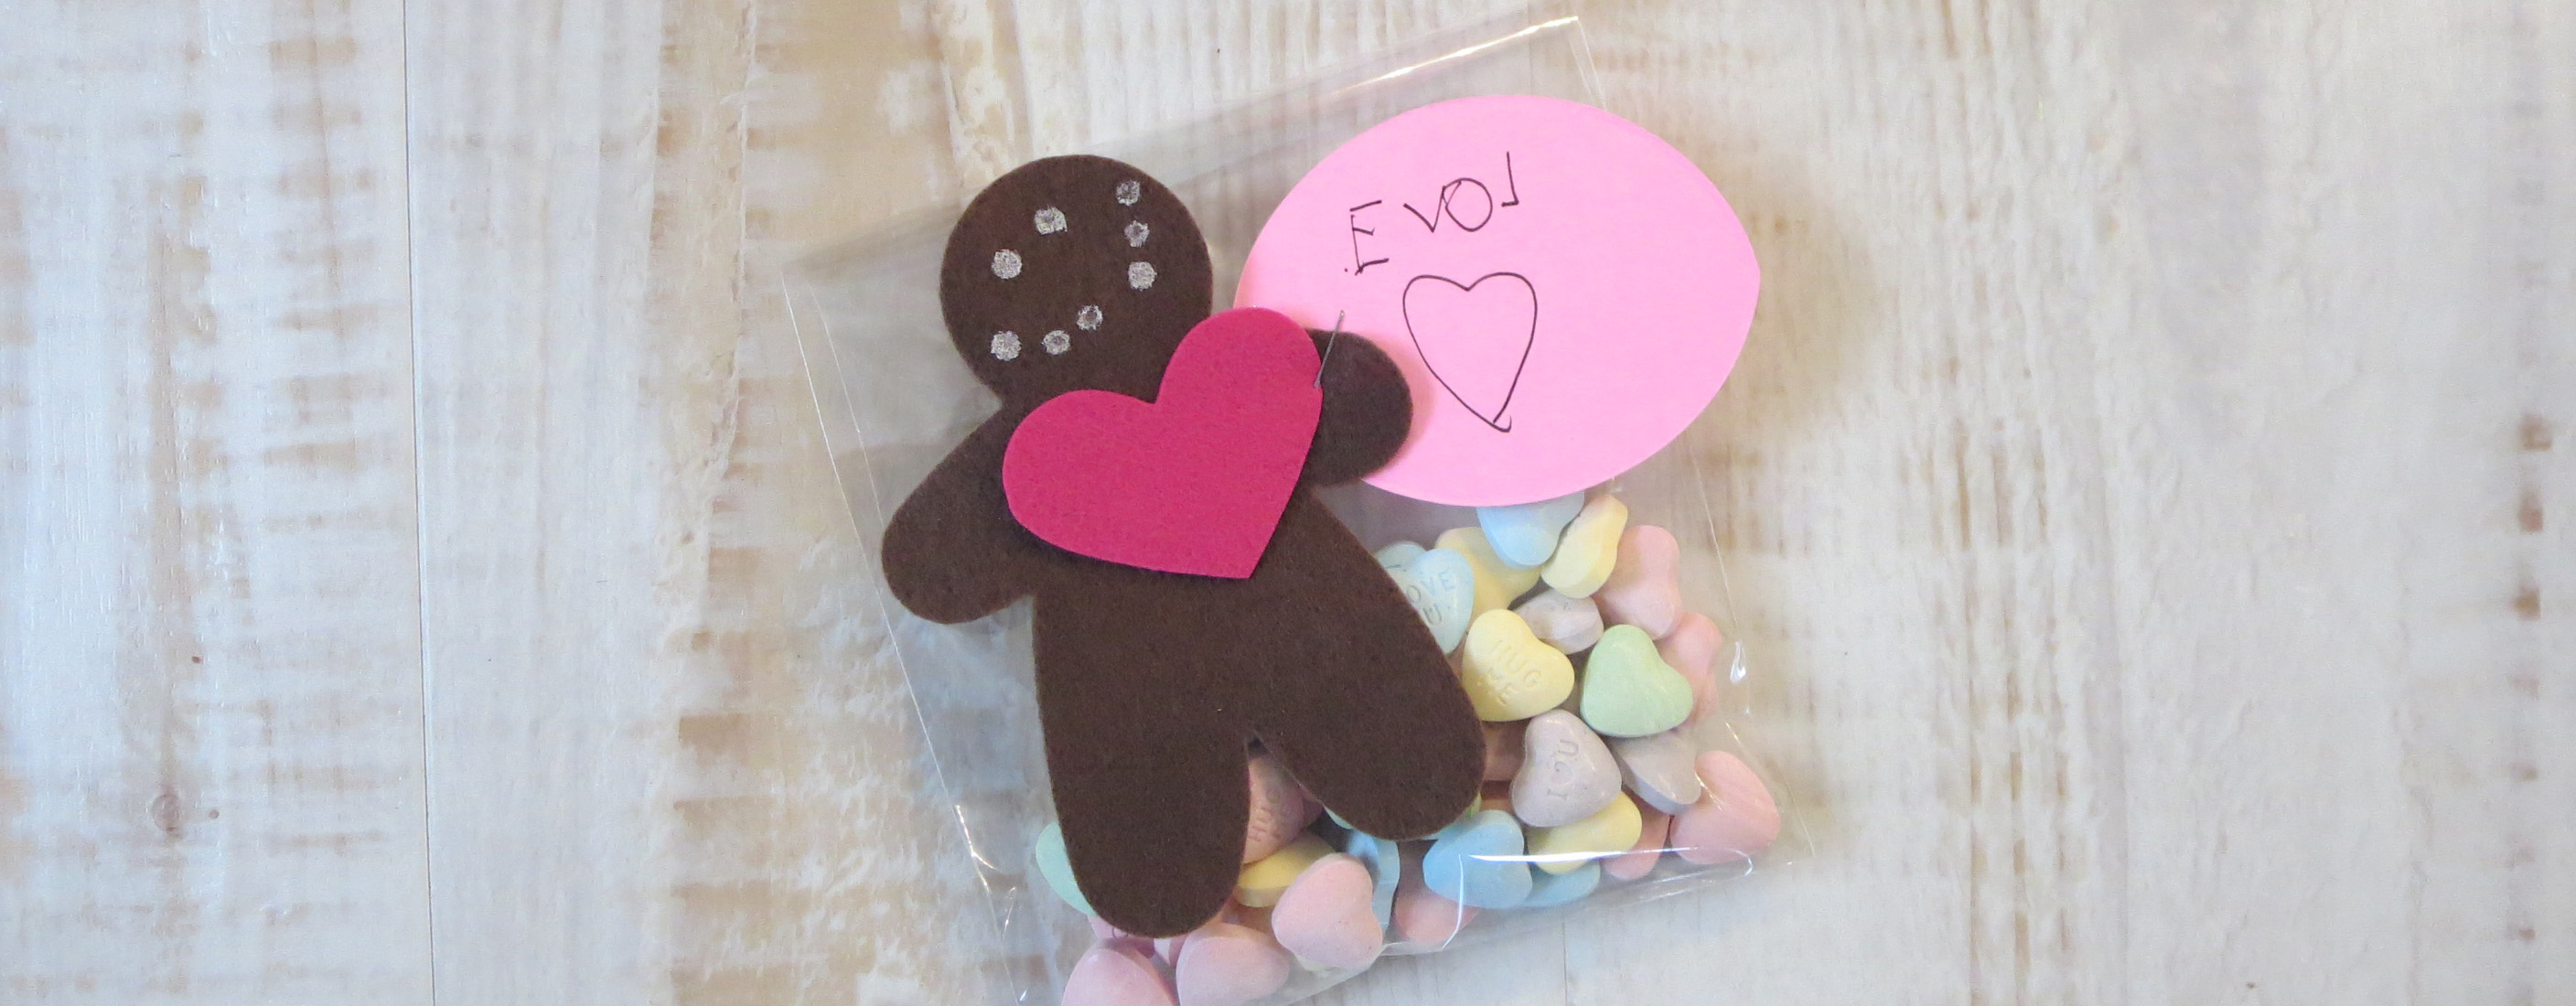 gift tag made with brown felt gingerbread man with a red felt heart on a bag of sweetheart candy on a whitewashed wood table